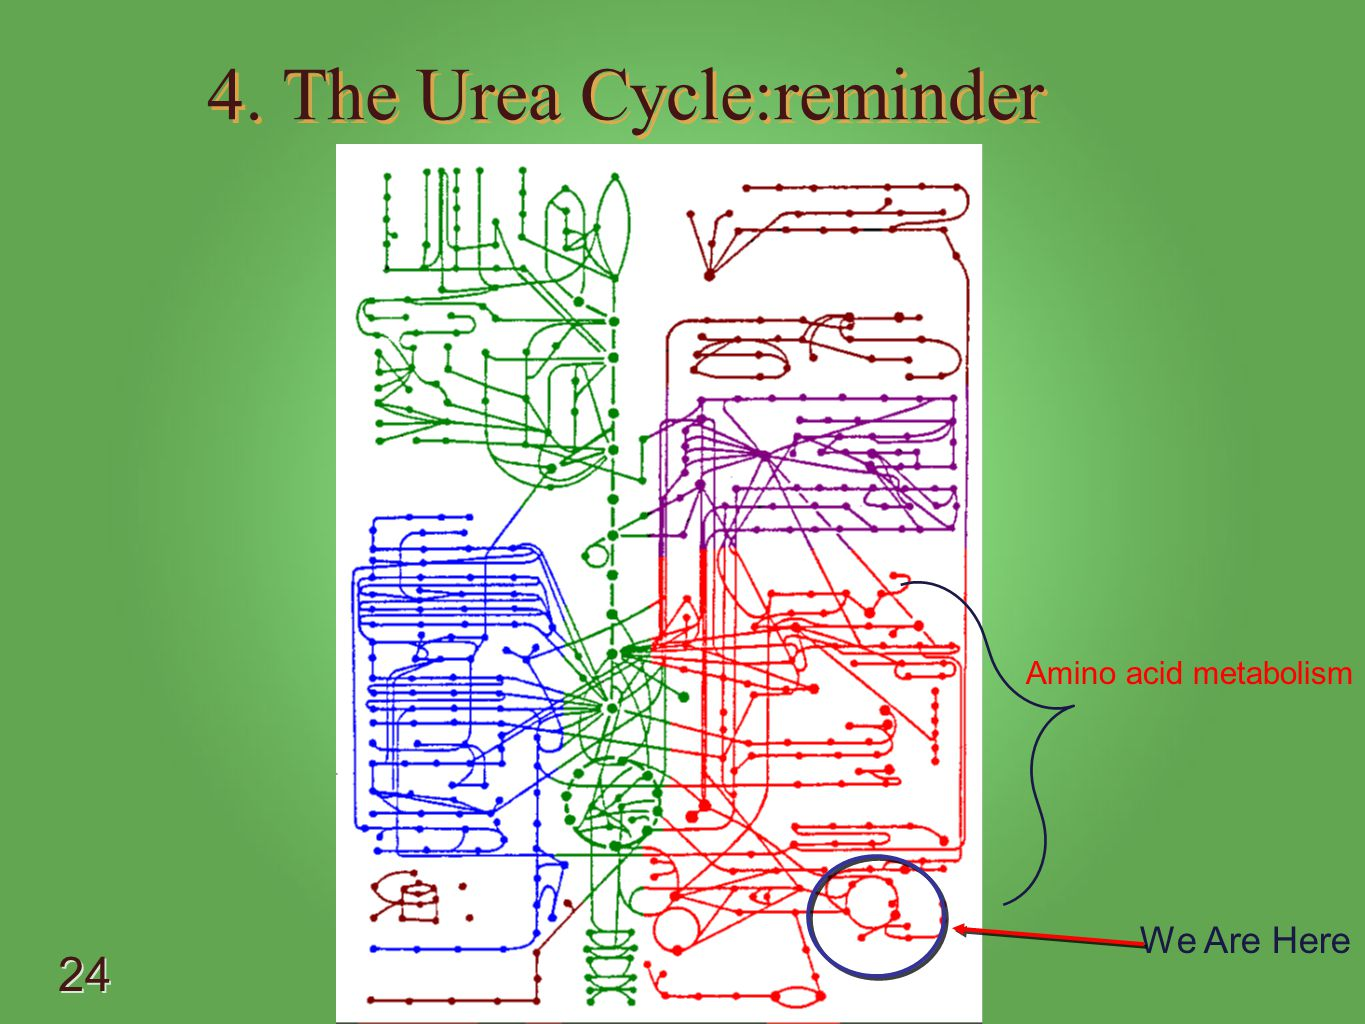 4. The Urea Cycle:reminder